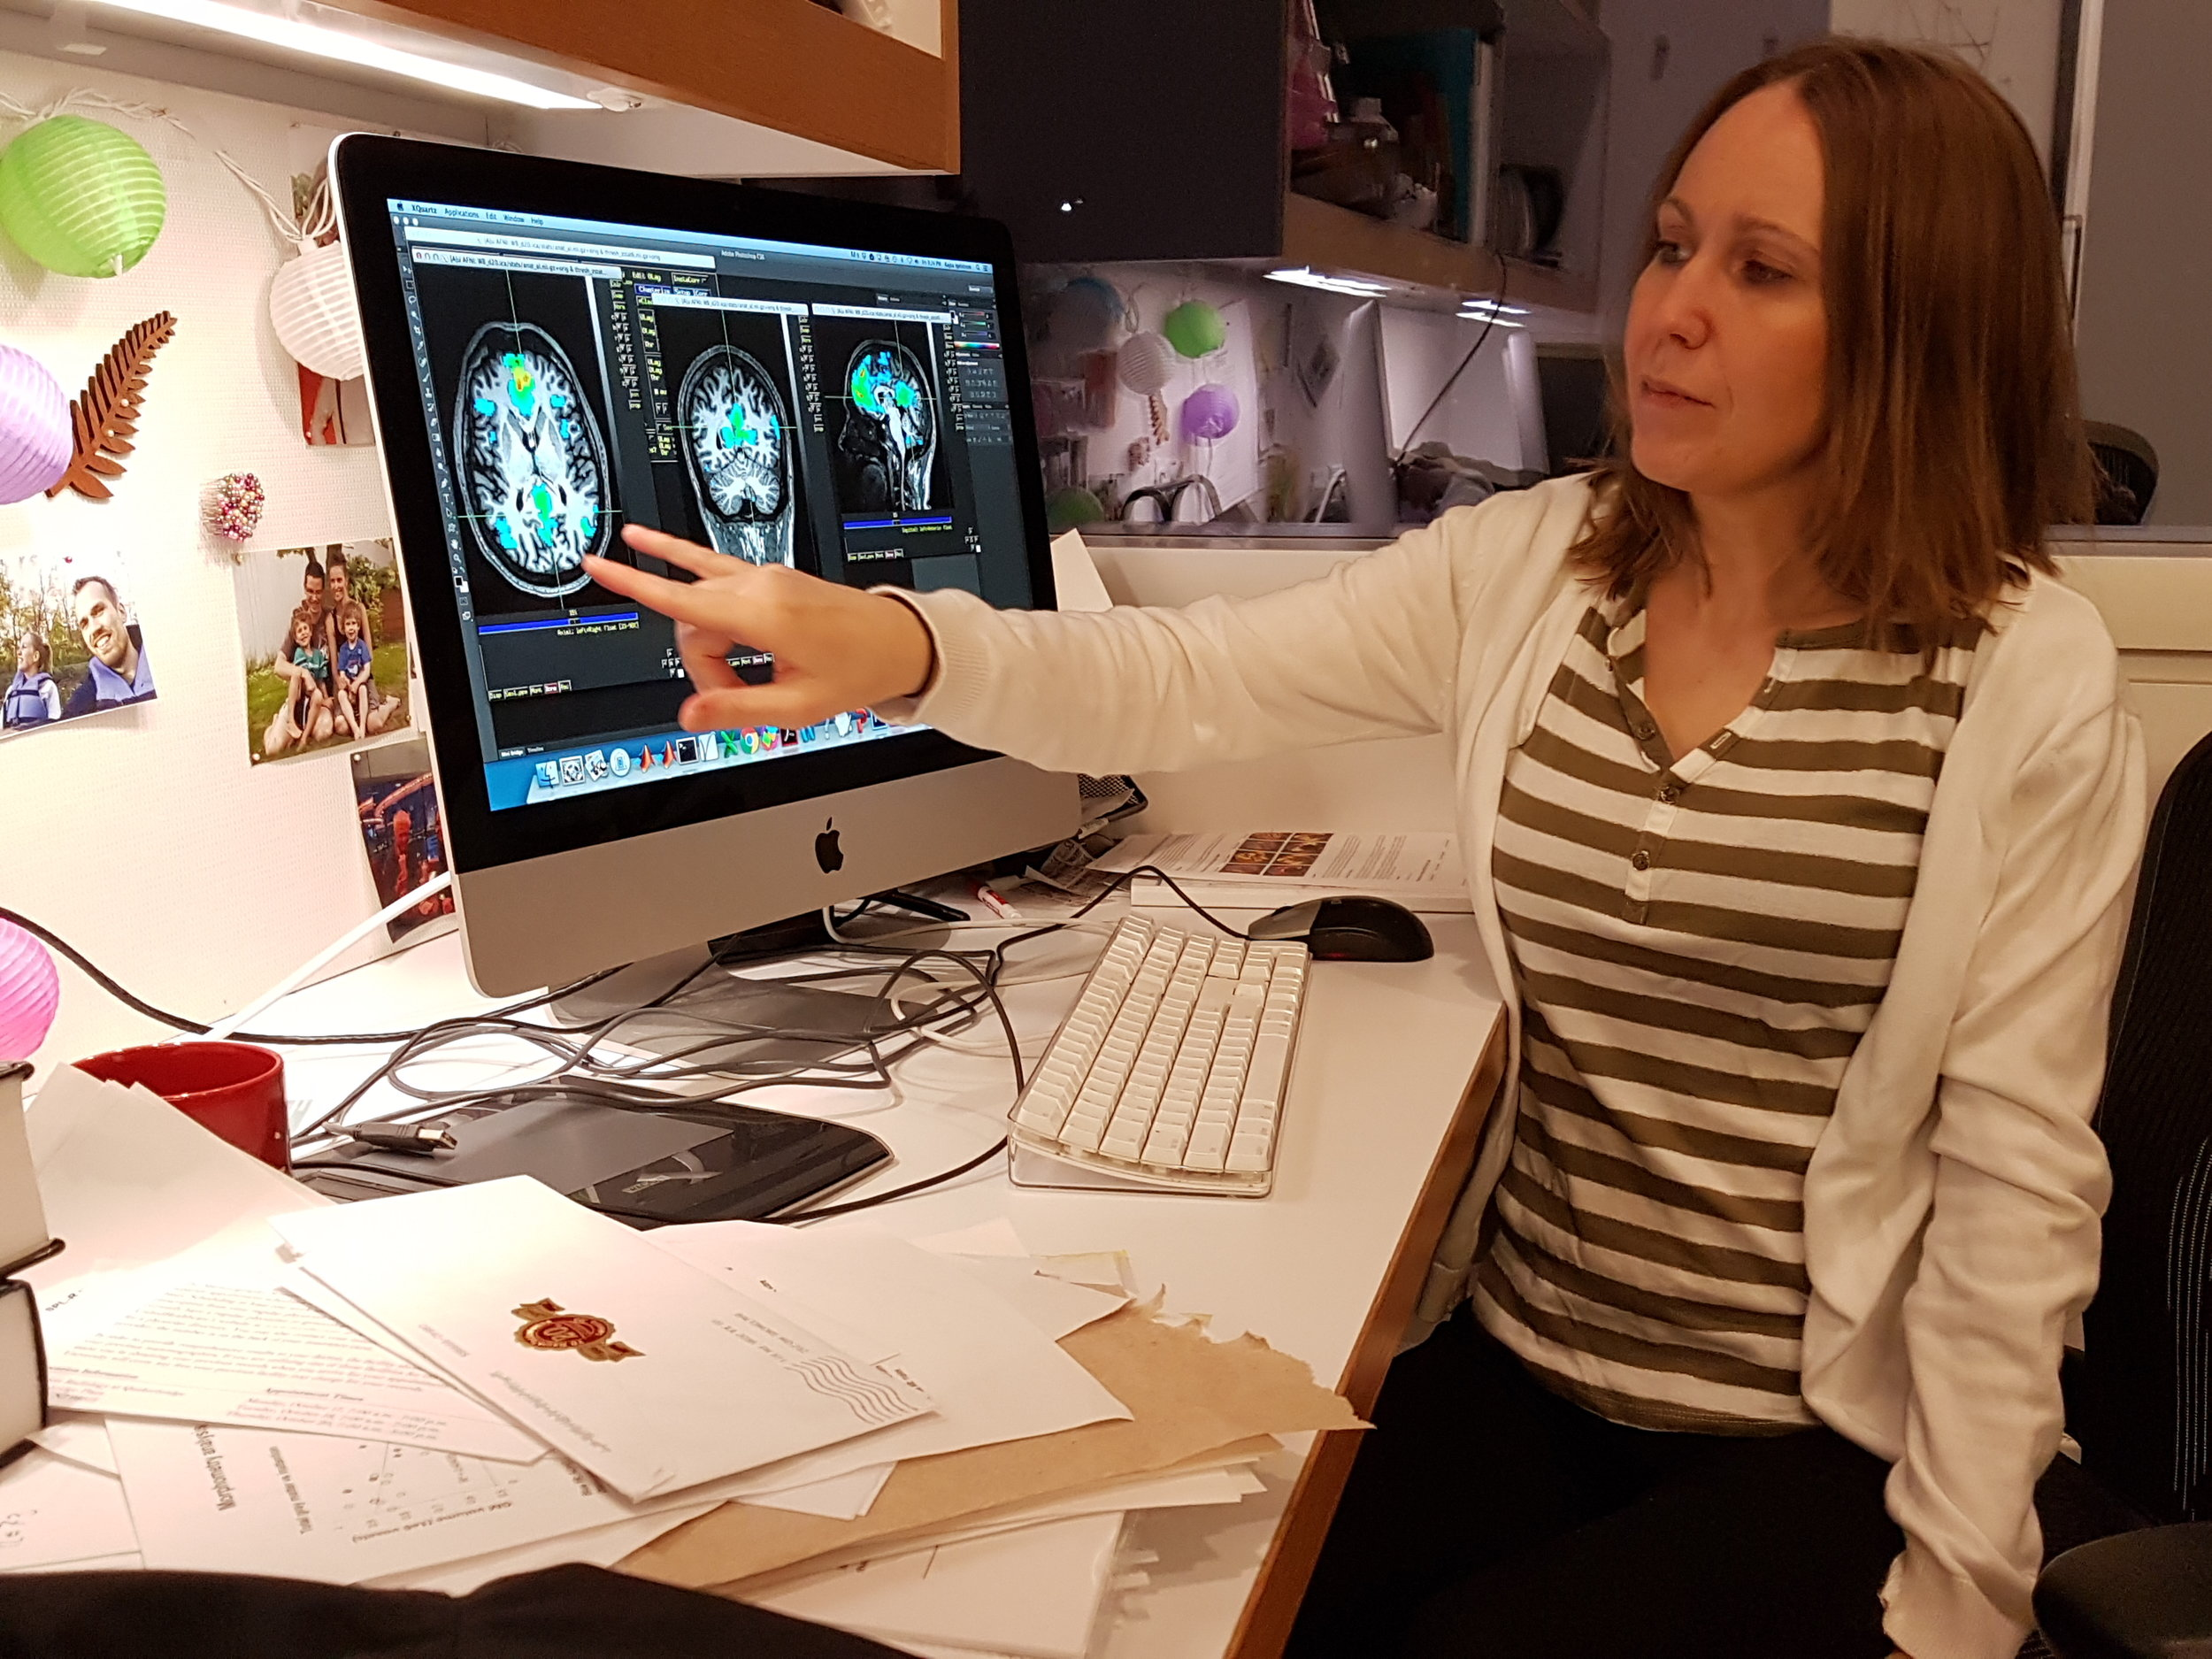 Kajsa trying to look pedagogical in her office at the Princeton Neuroscience Institute (2017)